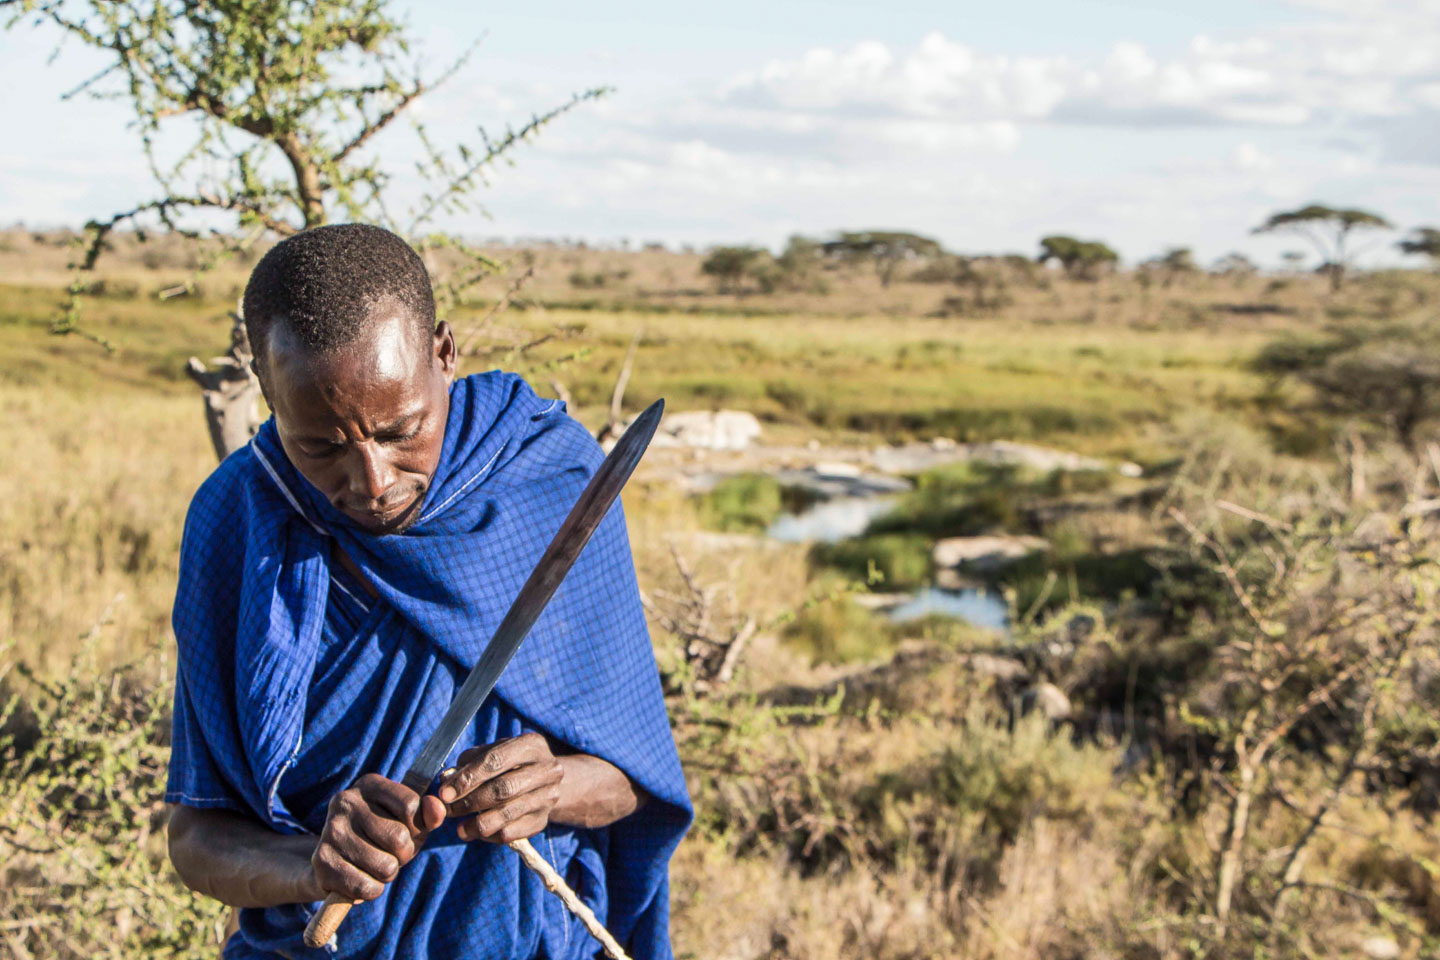 Trackers' unique talents are refined over generations wildlife tracking